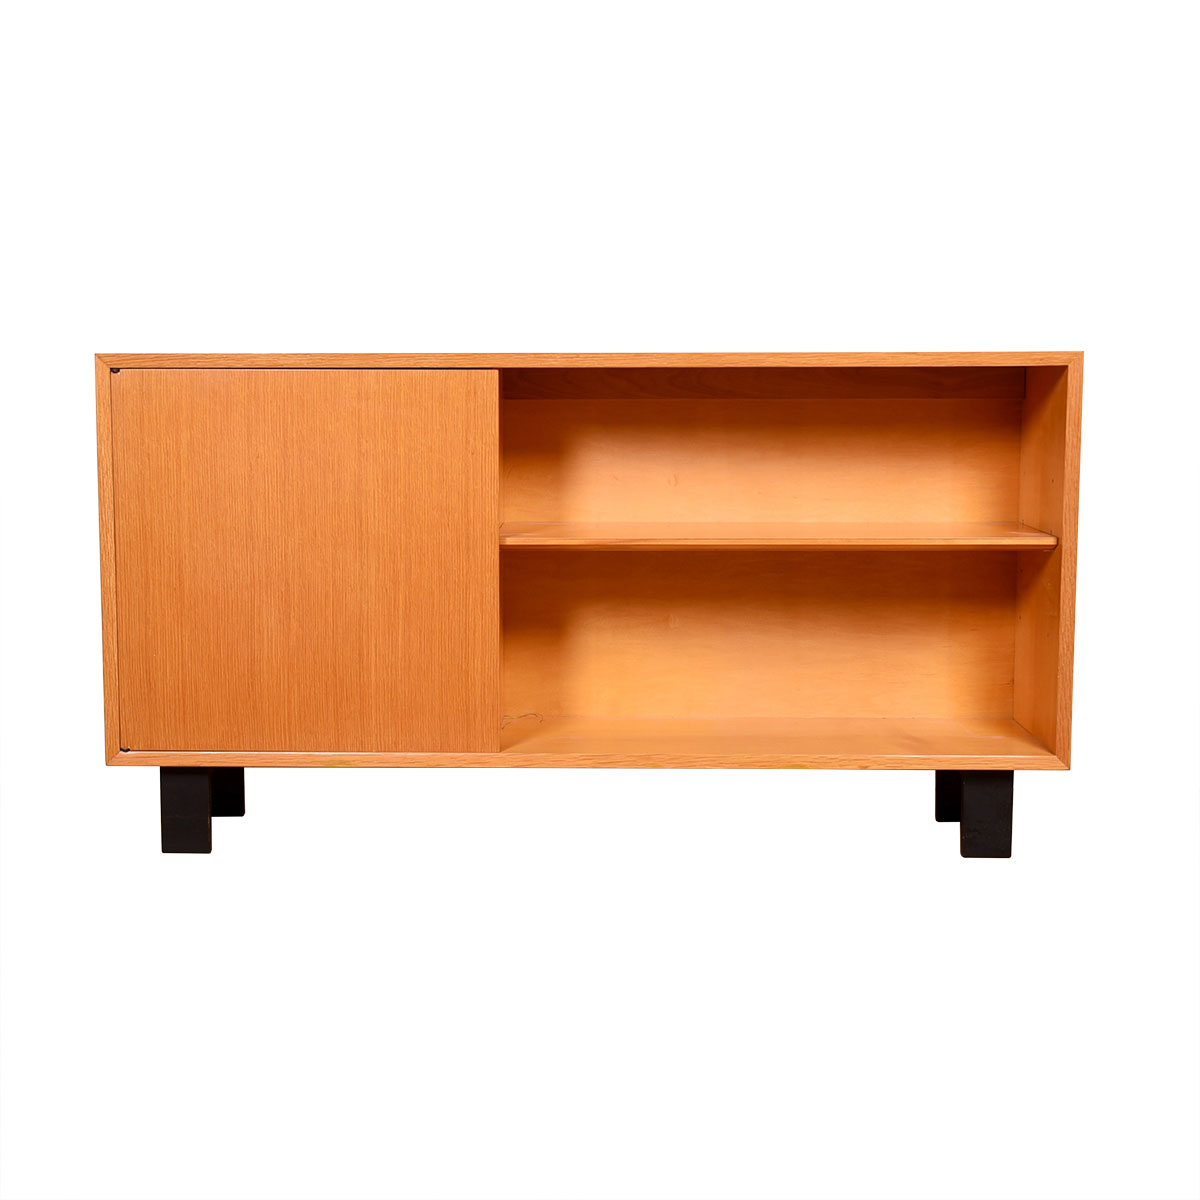 Slim MCM Low Bookcase w| Cabinet Door by George Nelson for Herman Miller 1950's